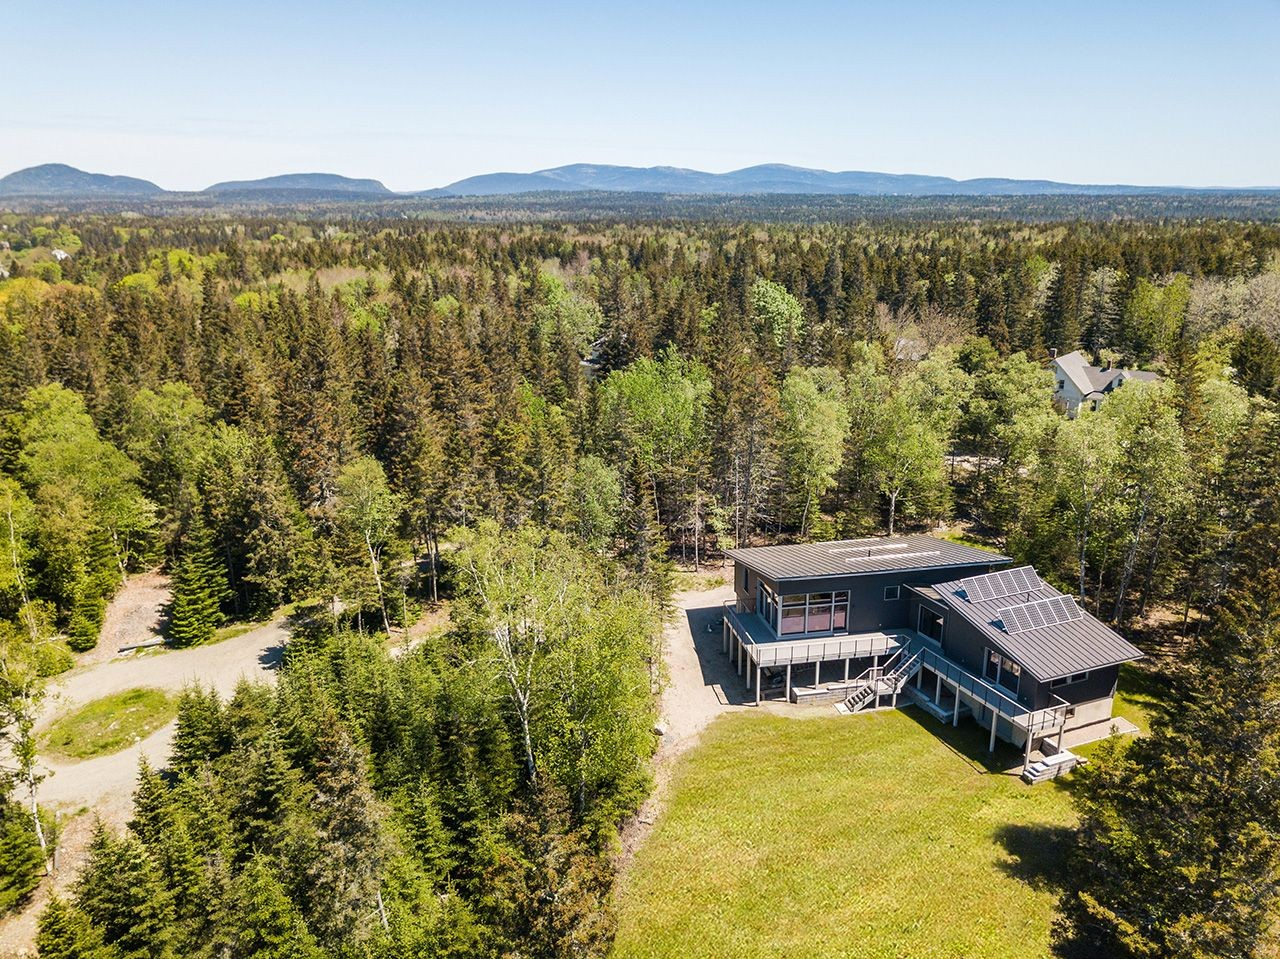 sophie s way a luxury single family home for sale in tremont, maine property id 377023322 christie s international real estate